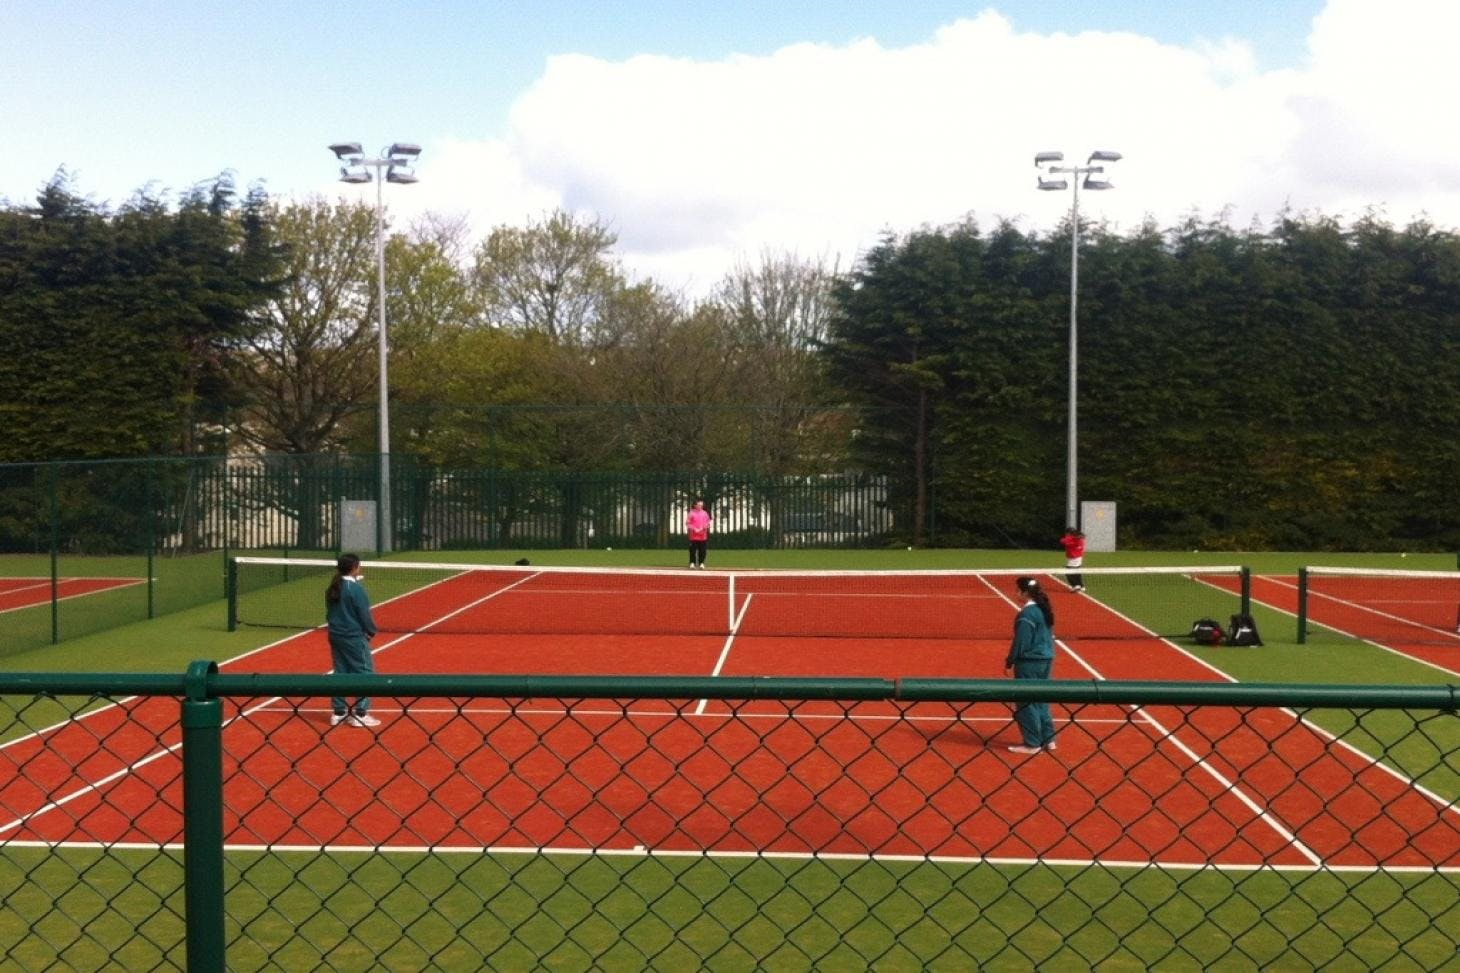 St Columba's College Outdoor | Astroturf tennis court